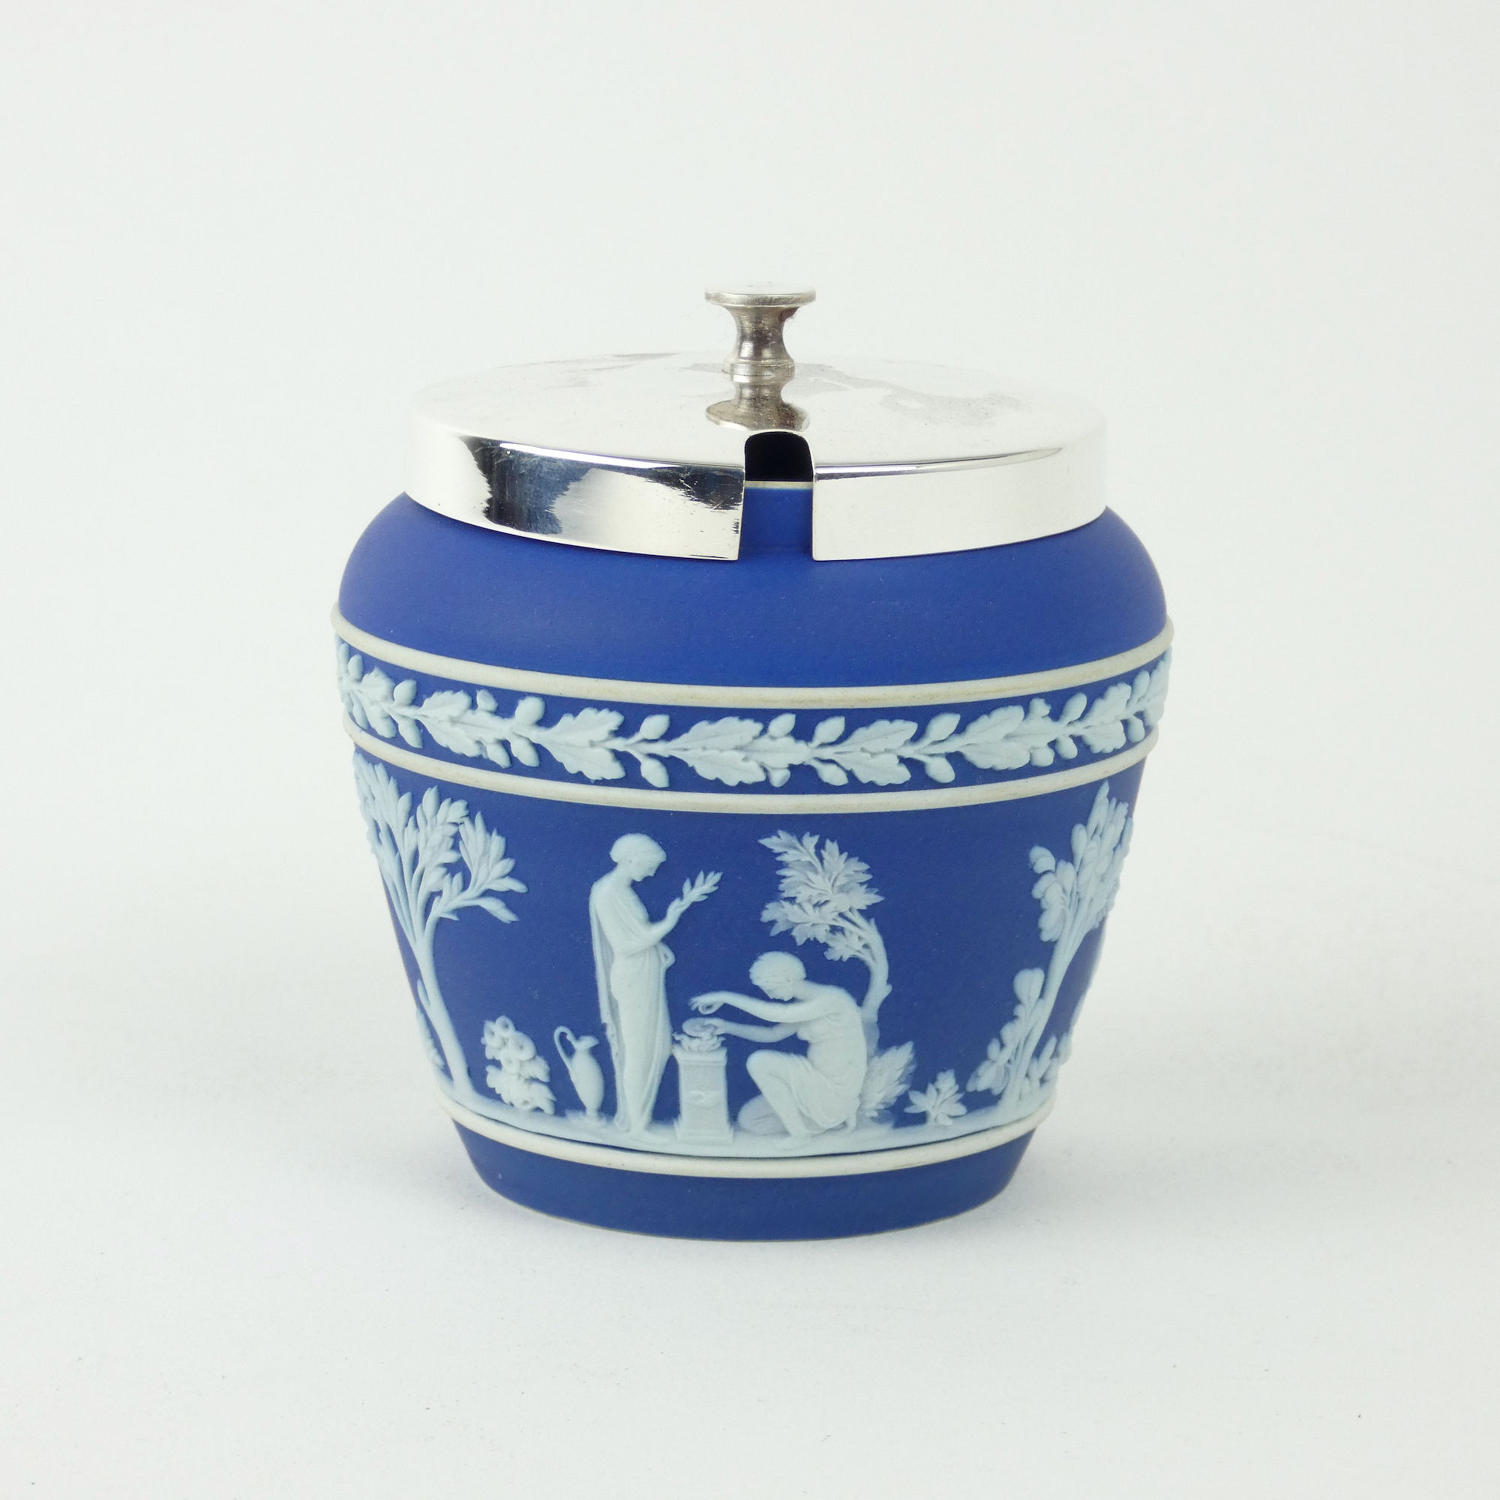 Blue Jasper Preserve Pot